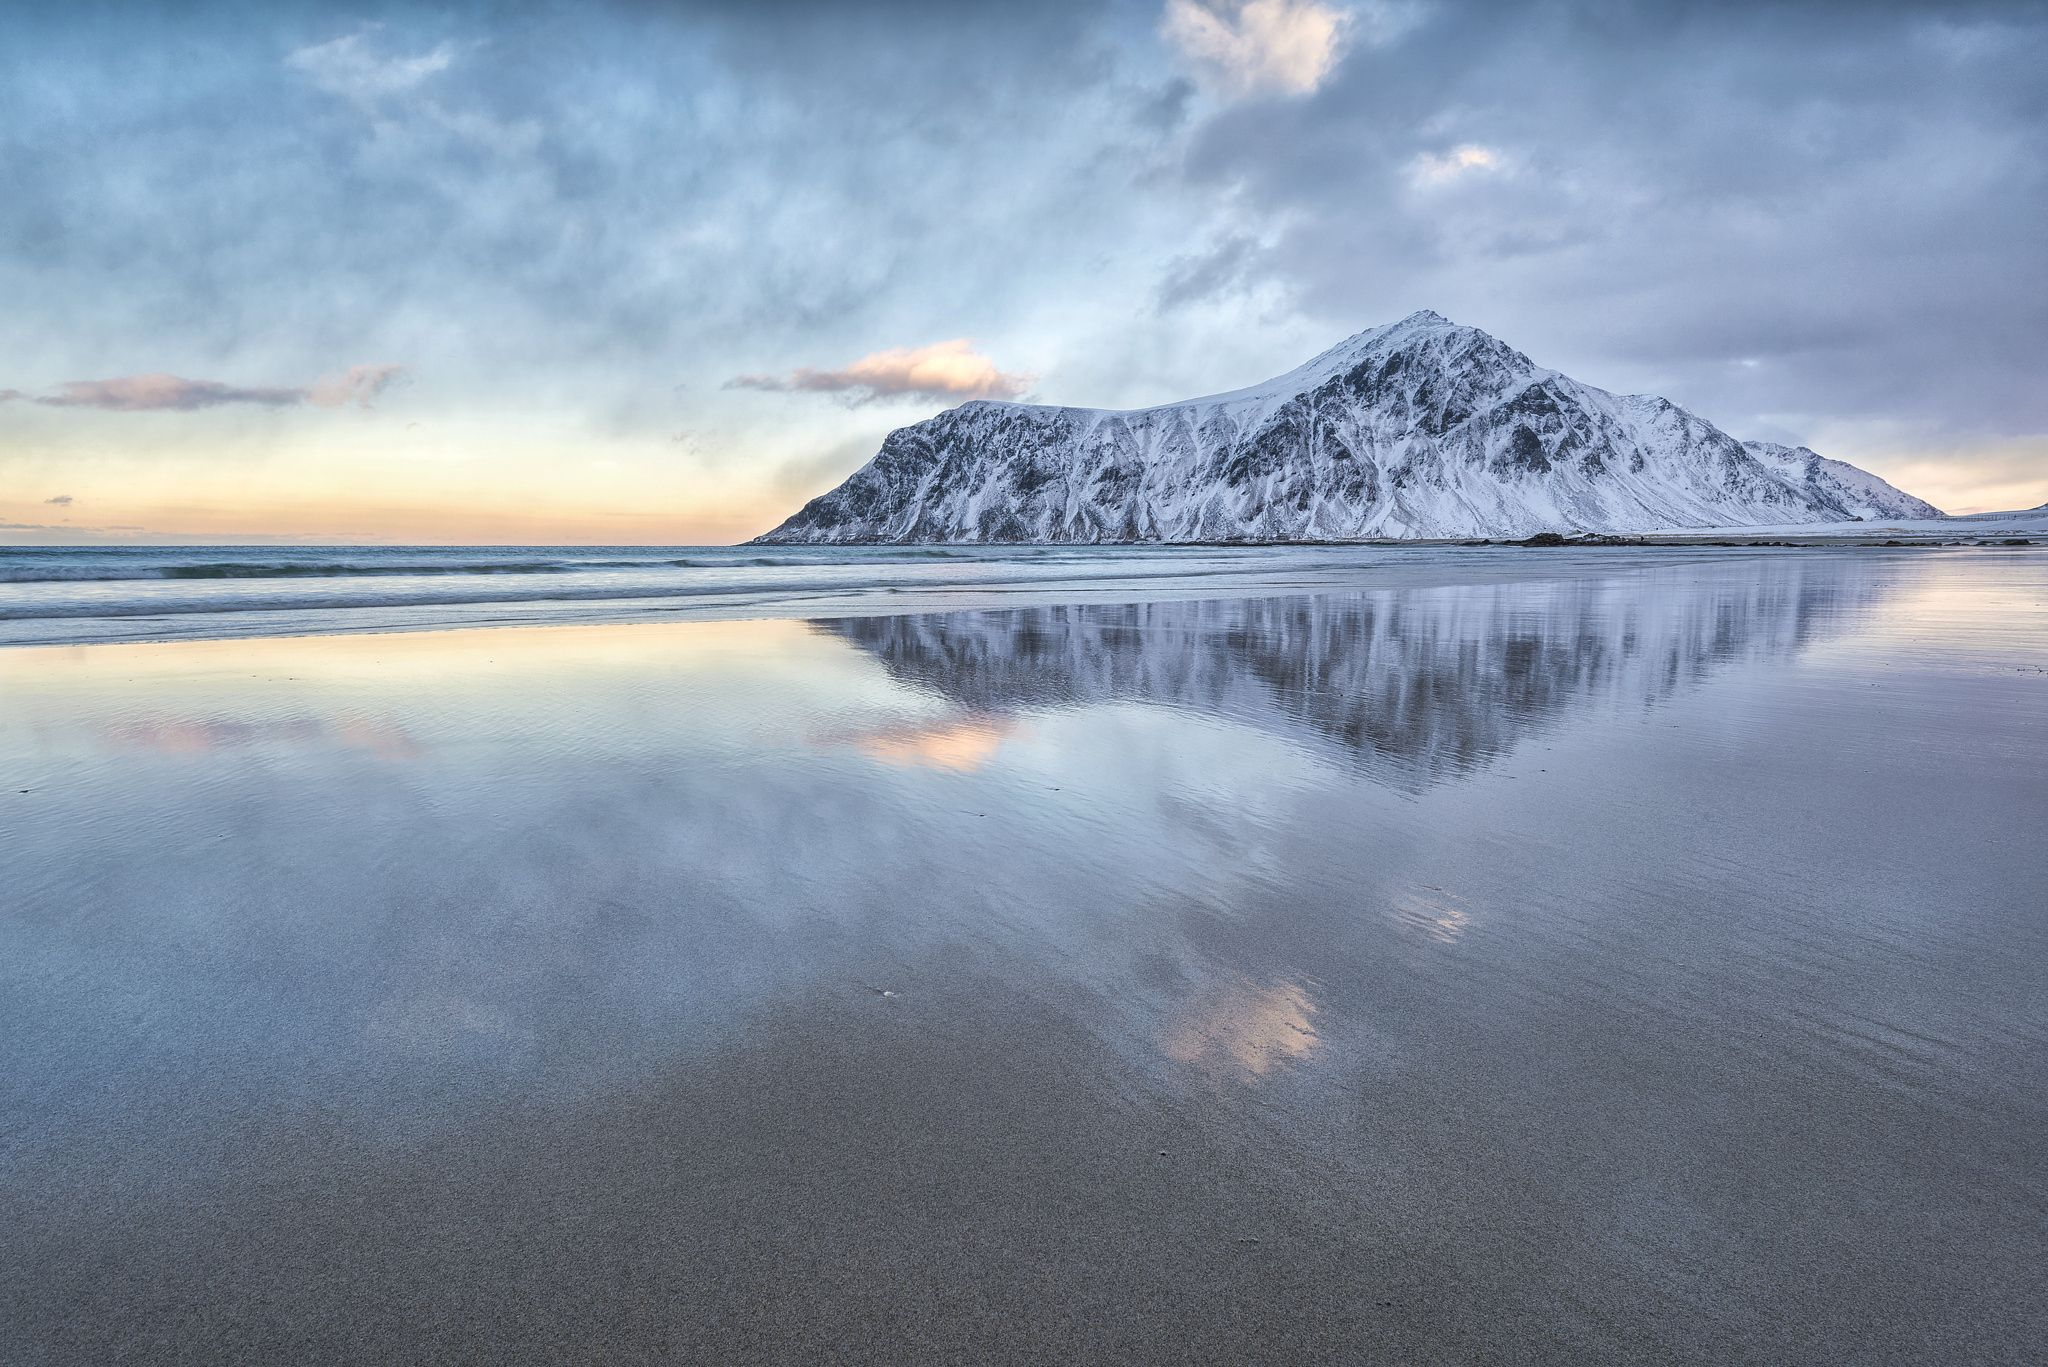 In the magical beach by Michael Nebuloni on 500px